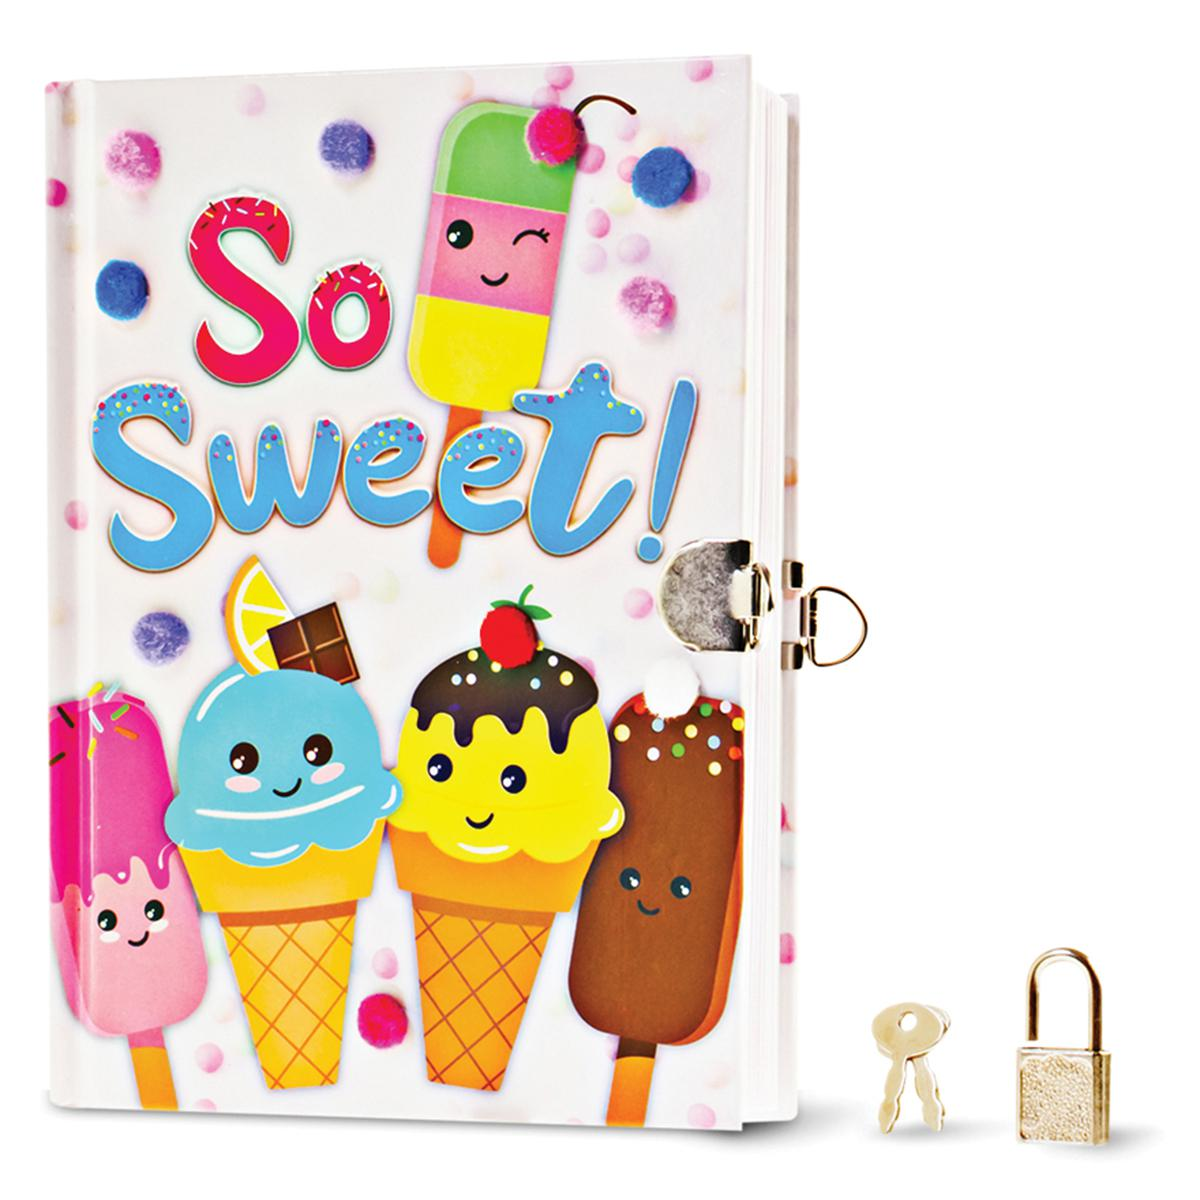 So Sweet! Pom-Pom Diary